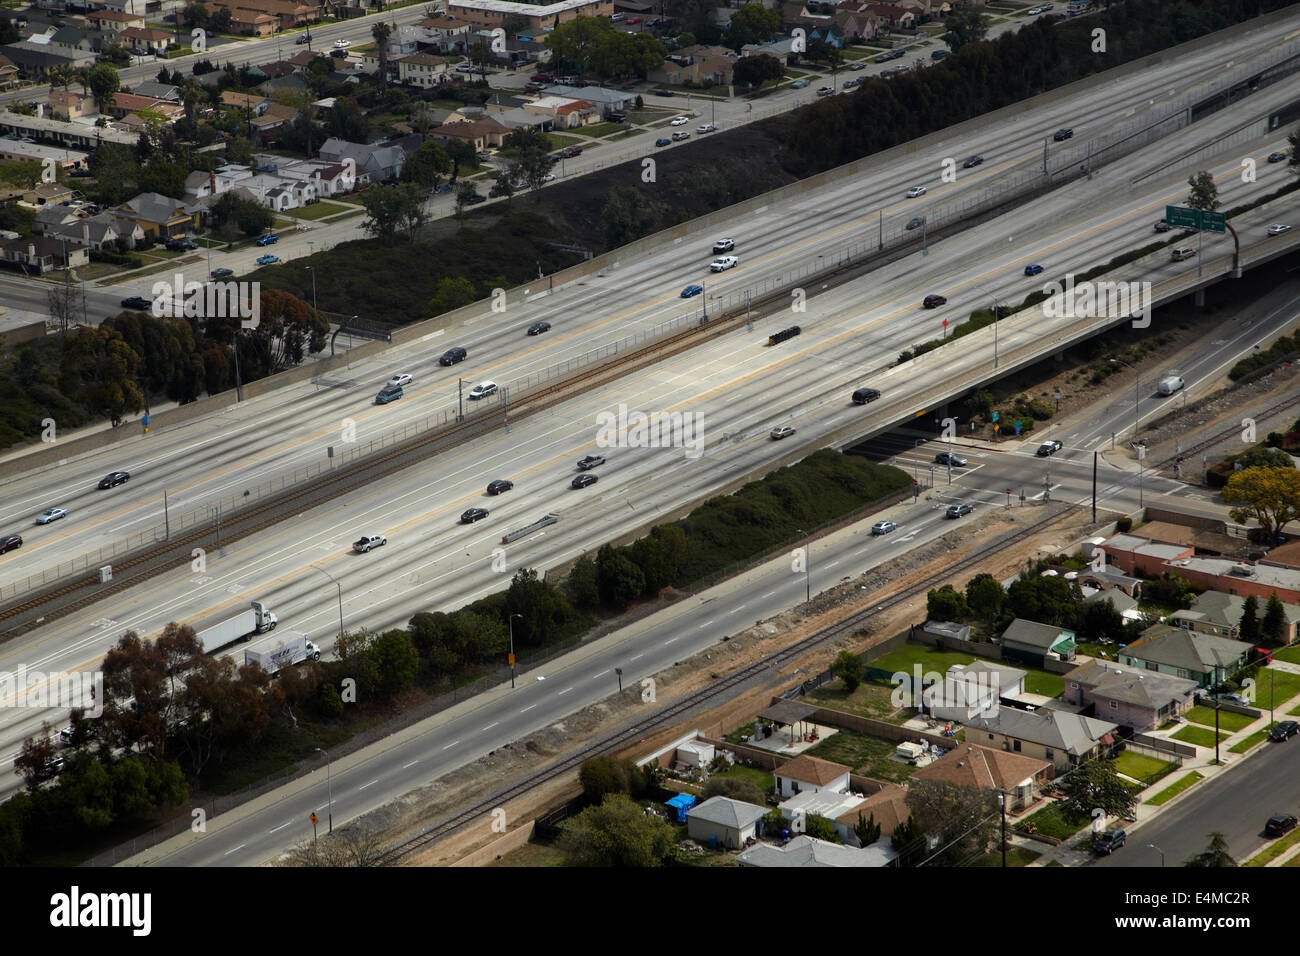 Interstate 105 or I-105, aka Glenn Anderson Freeway and Century Freeway, West Athens, Los Angeles, California, USA - Stock Image